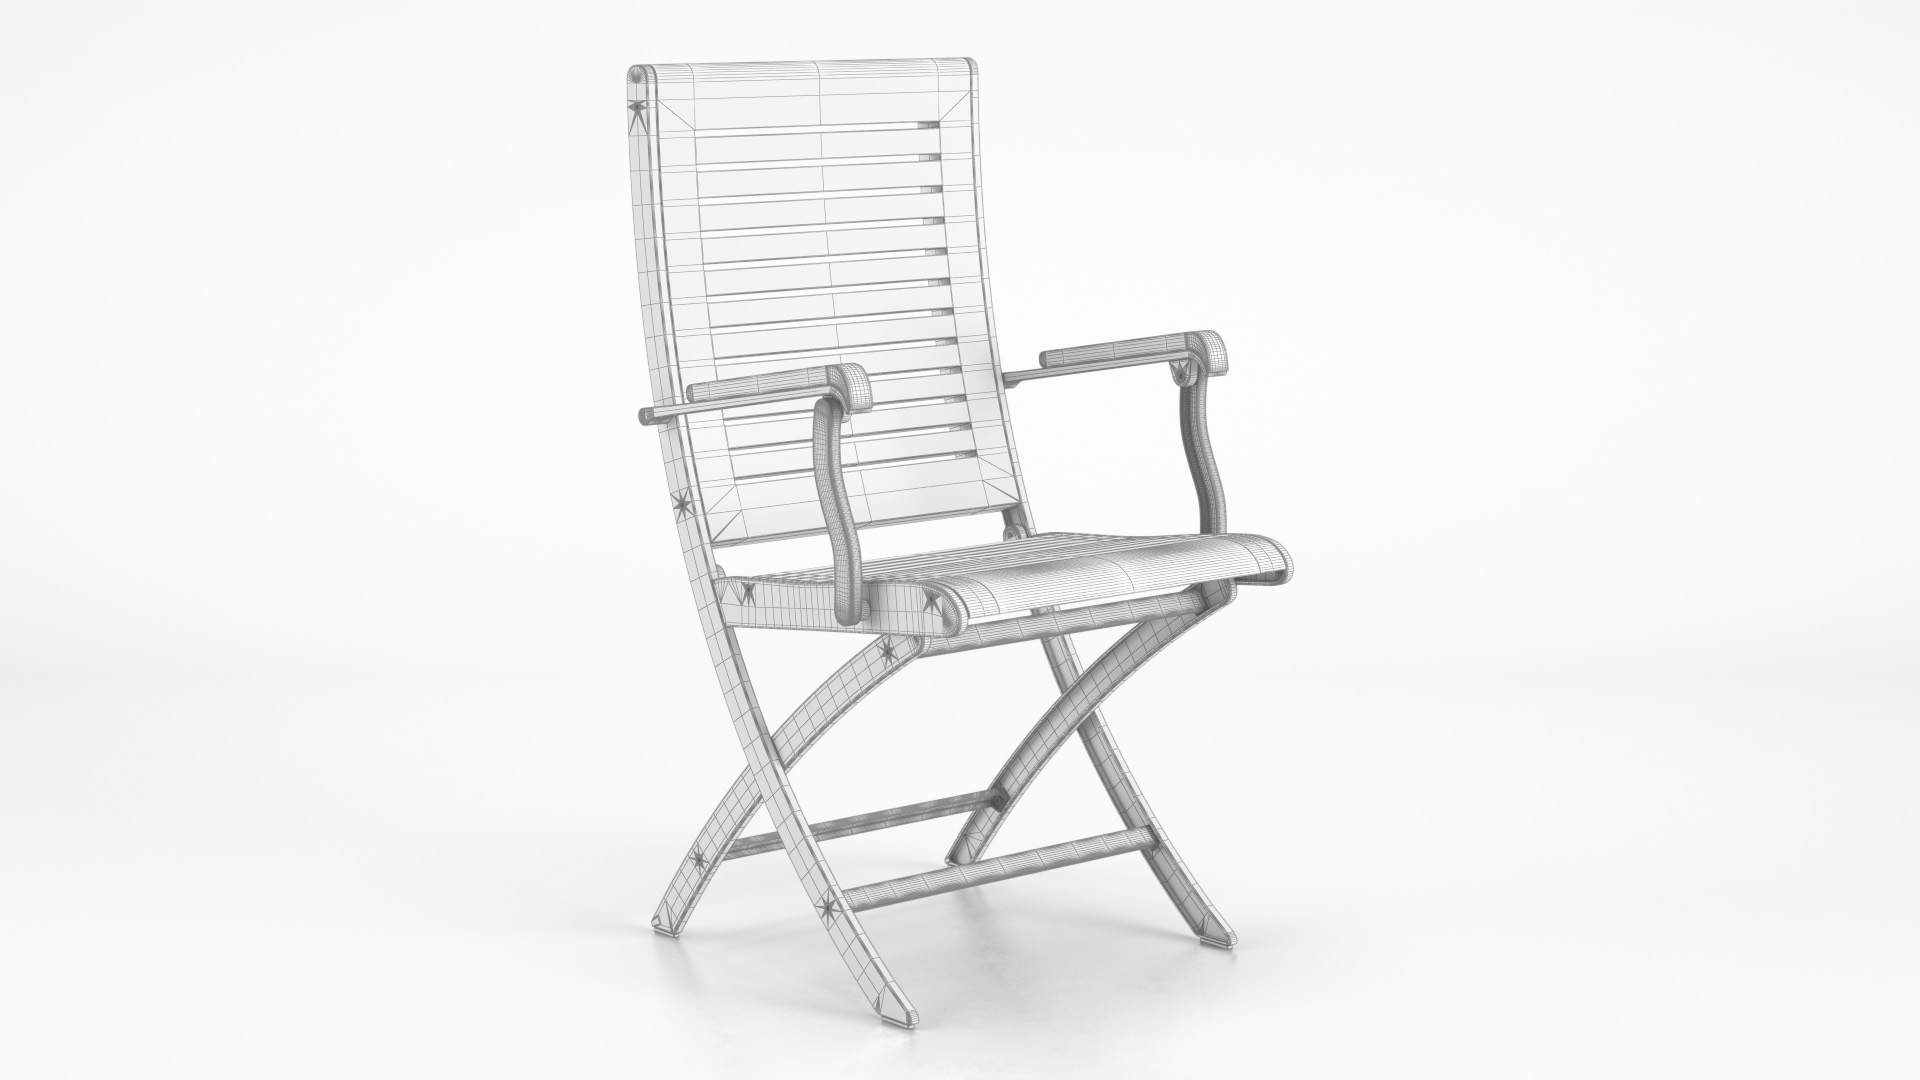 Metalic_Garden_Armchair_WhiteSet_01_wire_0000